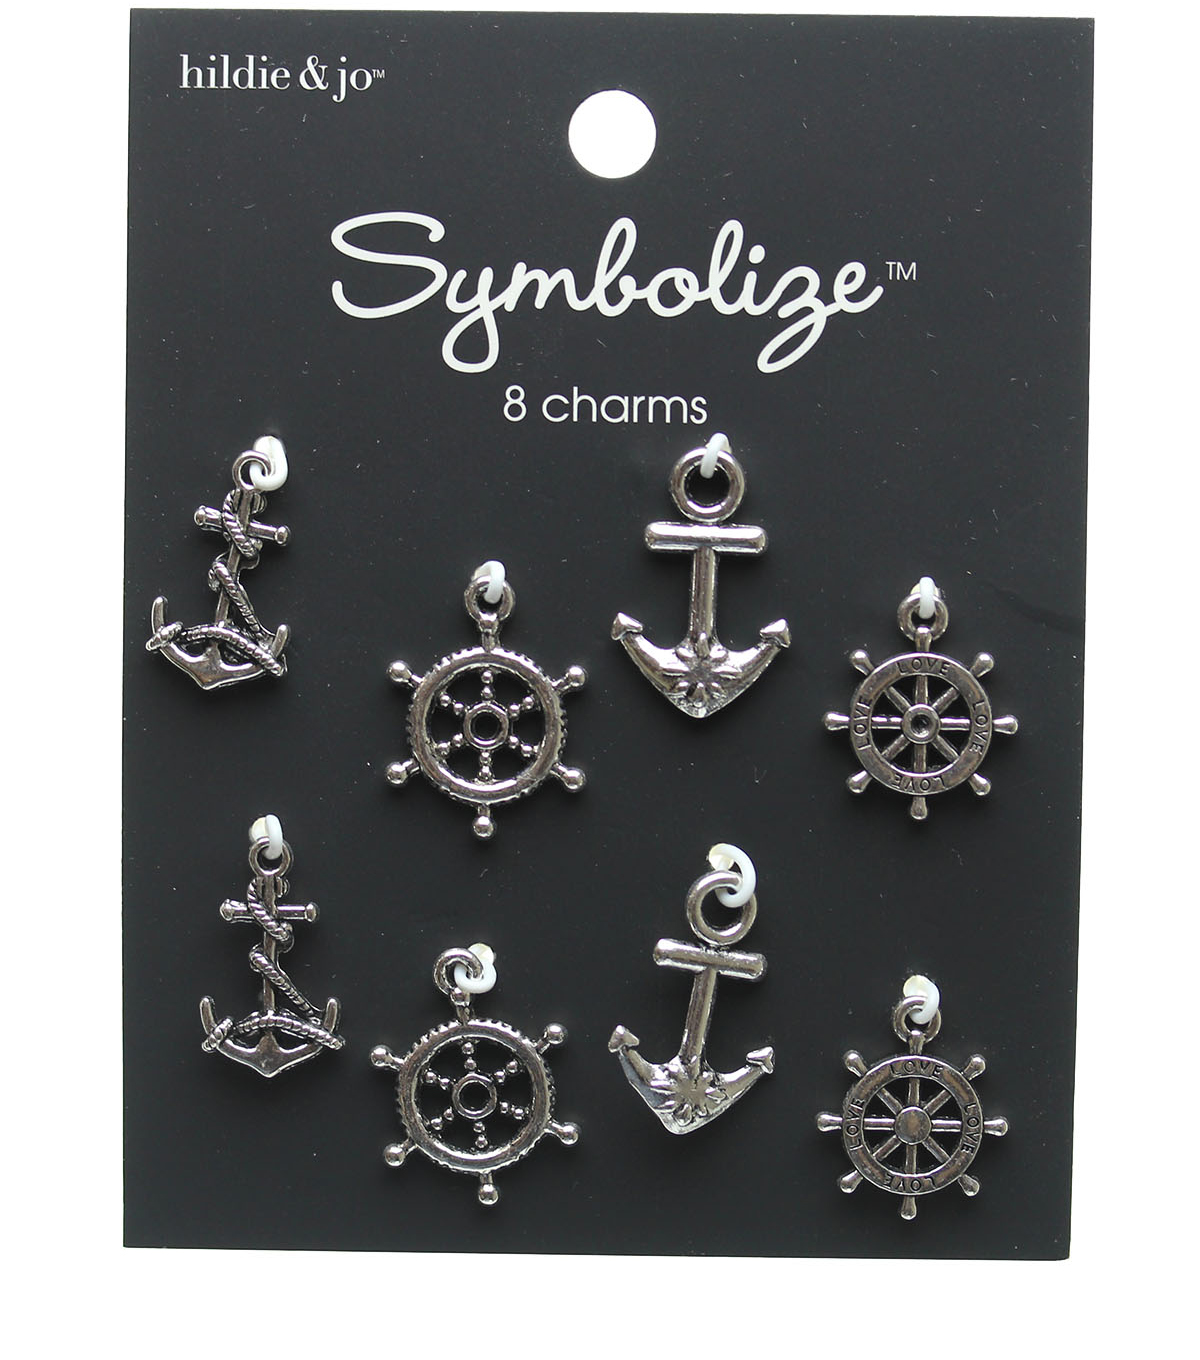 hildie & jo 8 pk Nautical Charms-Silver